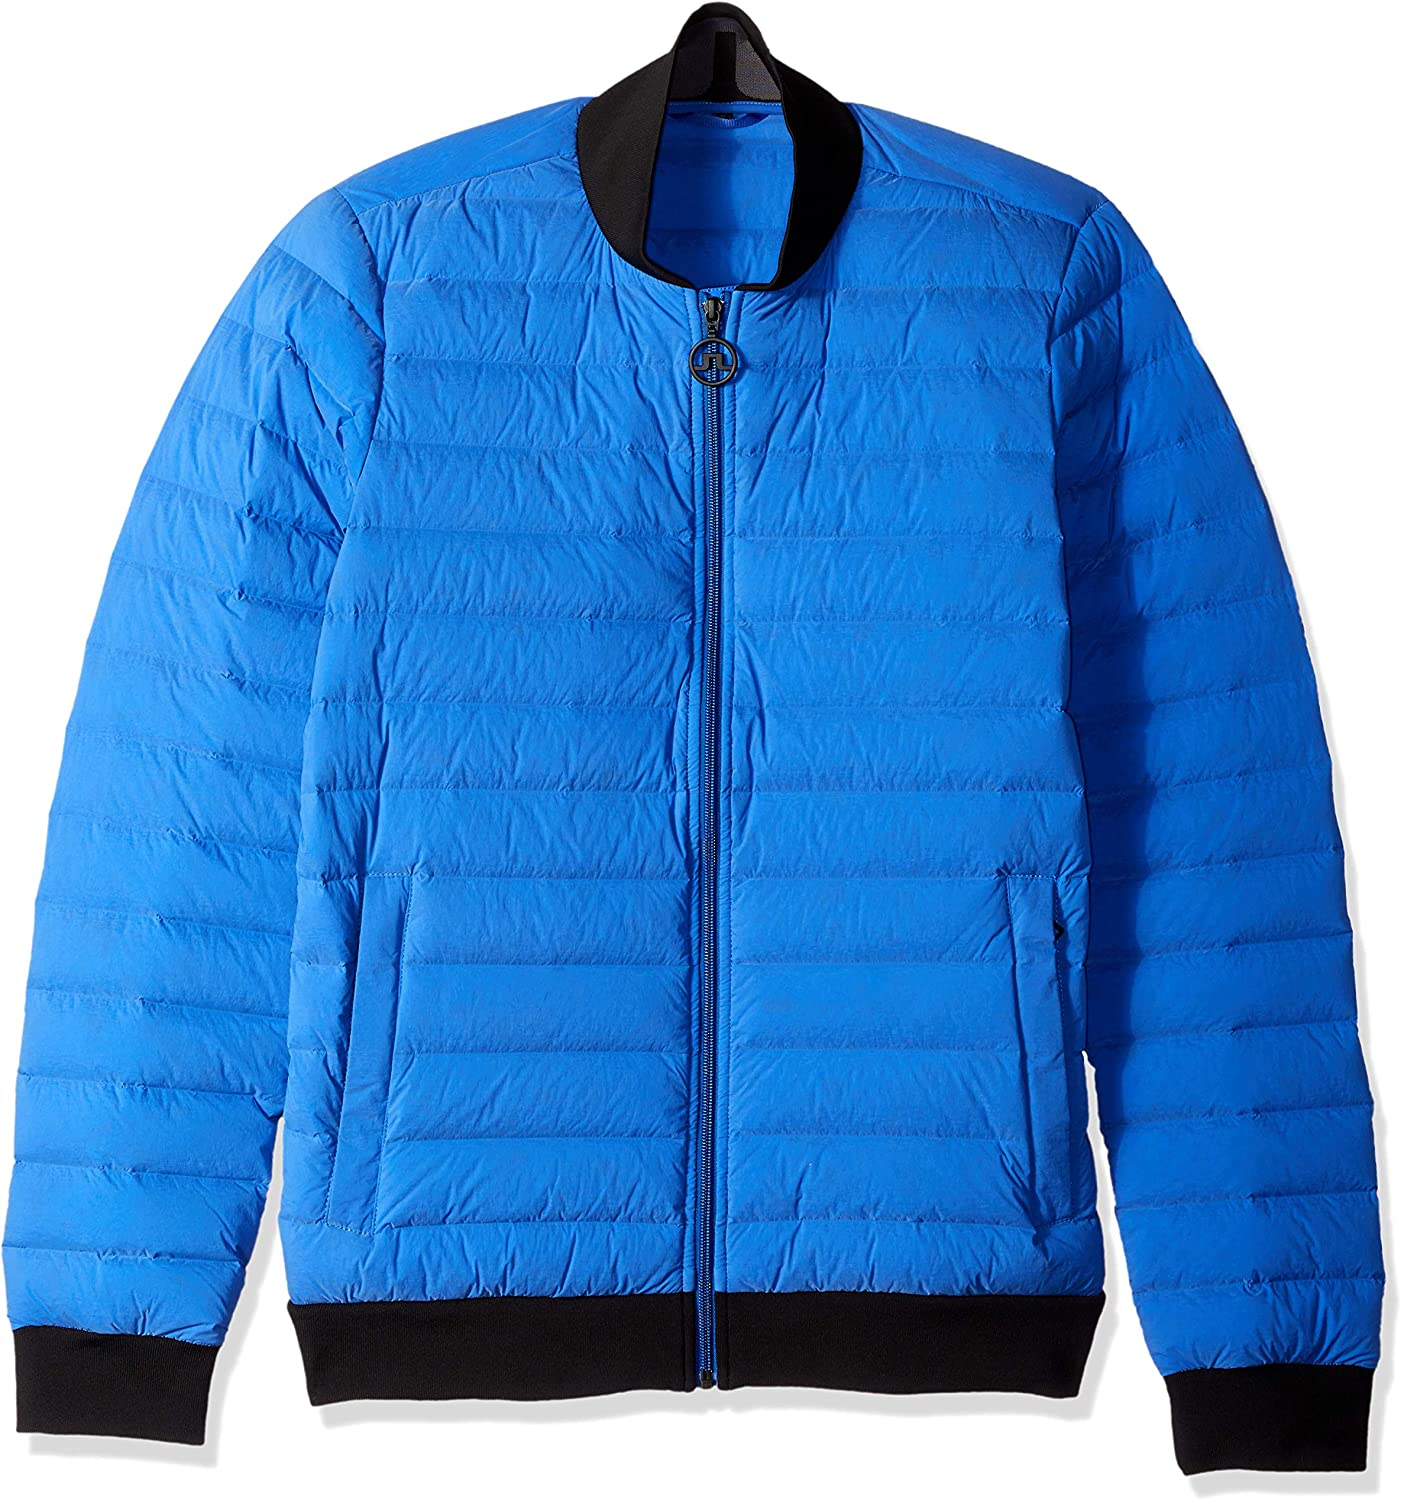 J.Lindeberg Men's Athletic Down Popular brand New Orleans Mall in the world Jacket Bomber